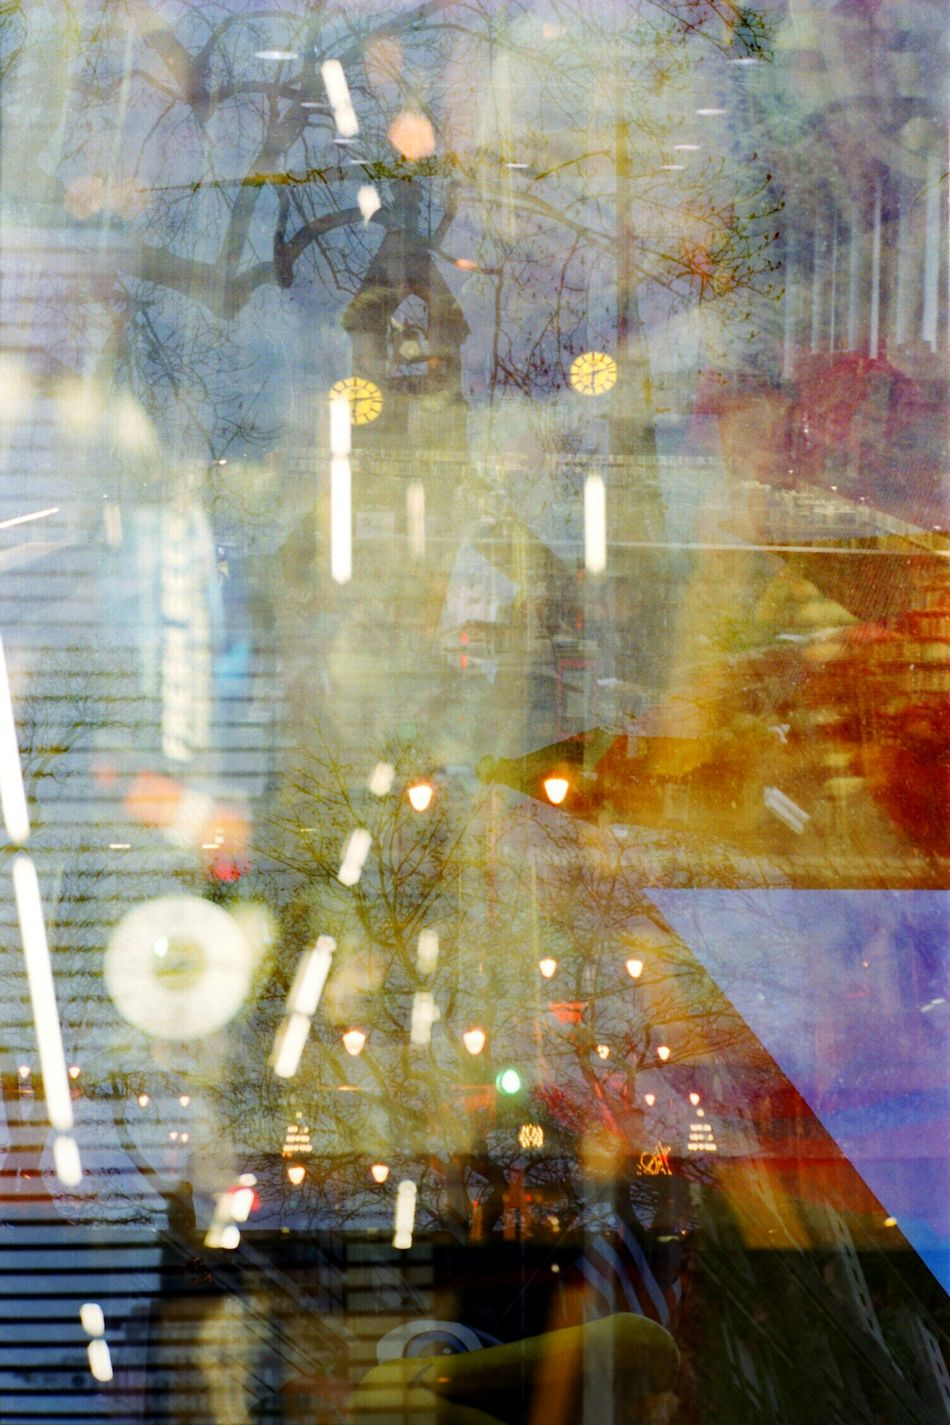 The result of my Canonetql17's failing sprockets. Something like 4 Double Exposure hots in one. Glitch Film Photography 35mm Camera 35mm Film The City Light